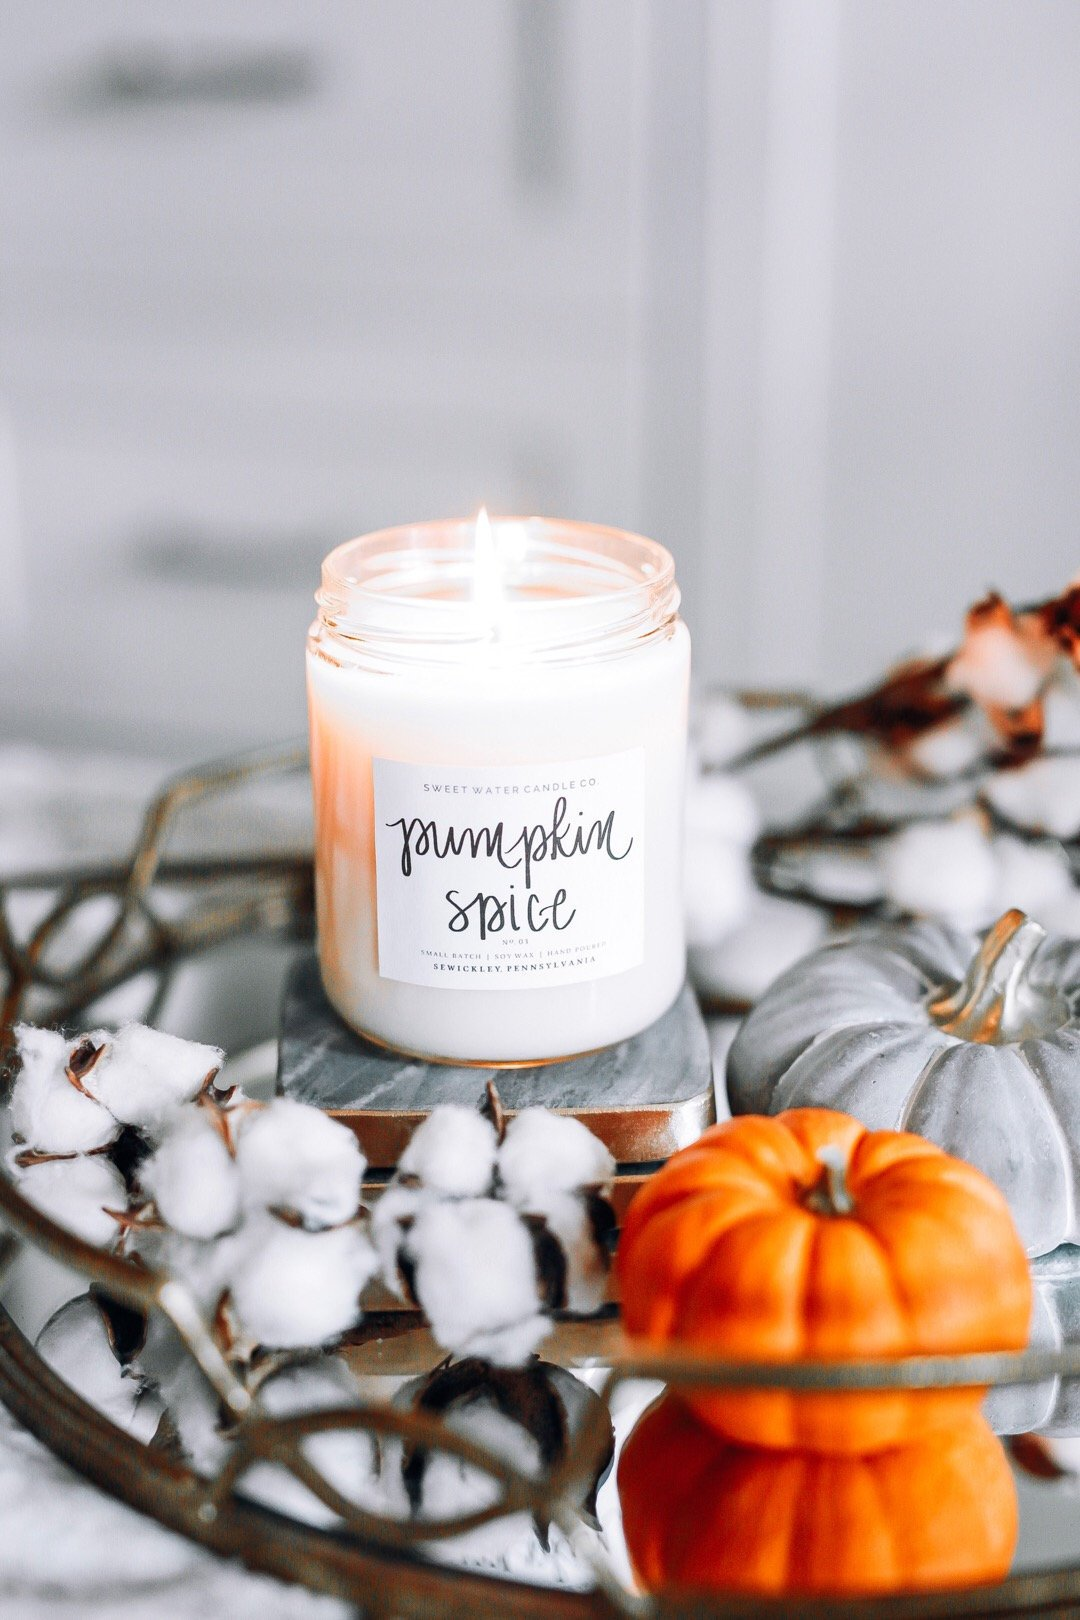 Sweet water decor pumpkin spice candle